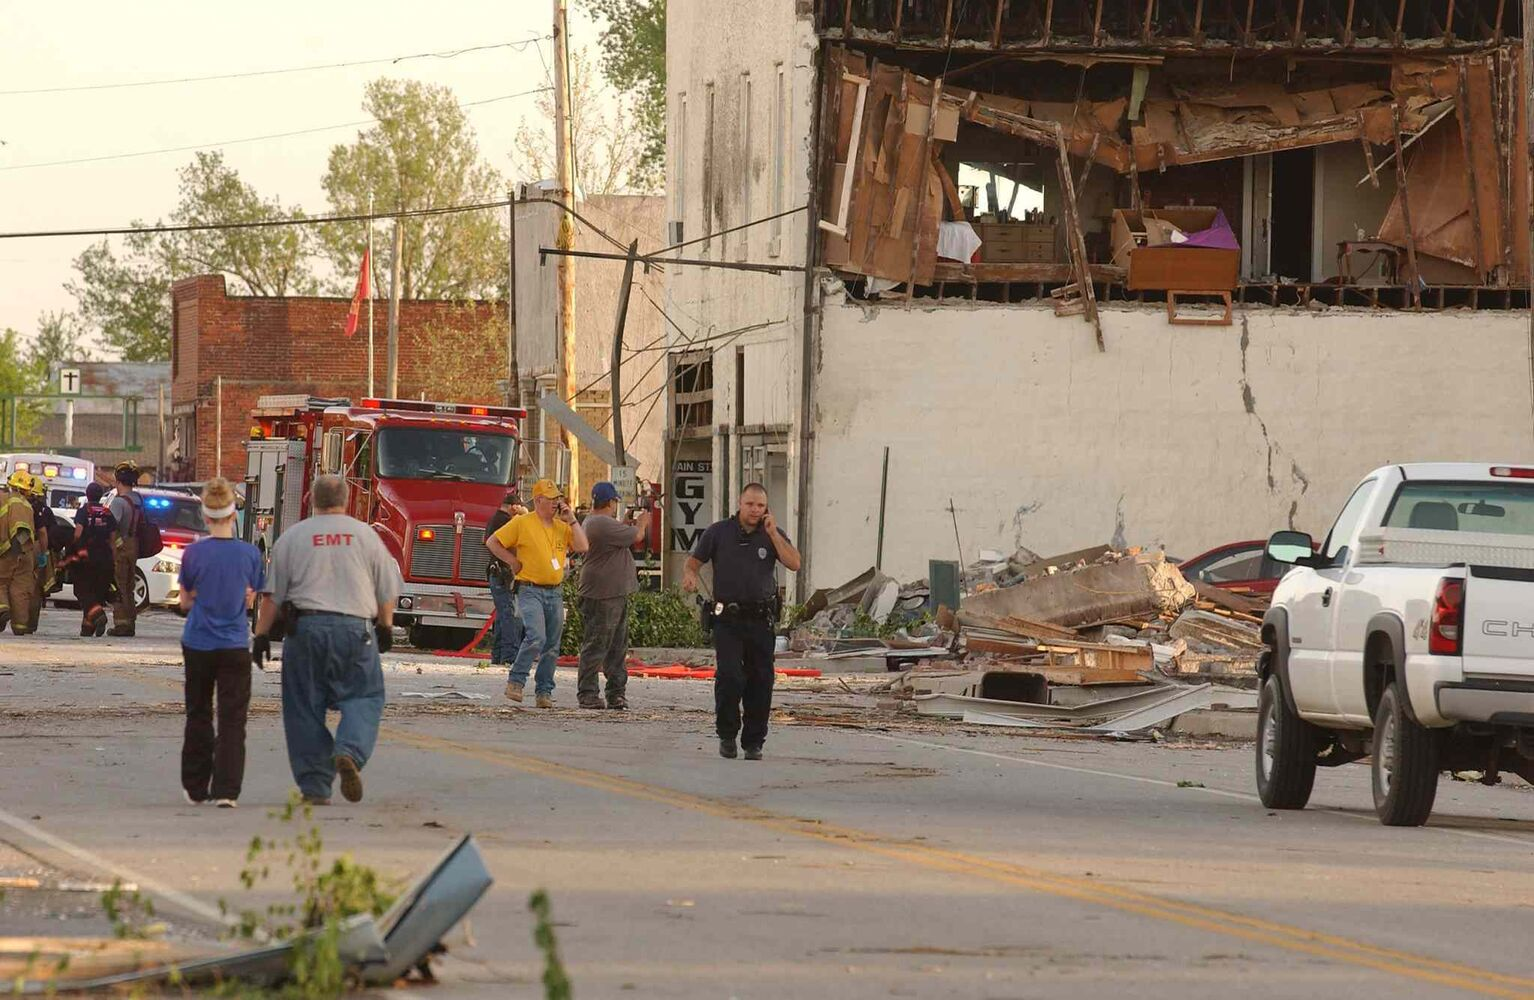 First responders, volunteers and firemen gather on Main Street in Quapaw, Okla., after a tornado struck the city on Sunday evening. (GARY CROW / TULSA WORLD / THE ASSOCIATED PRESS)